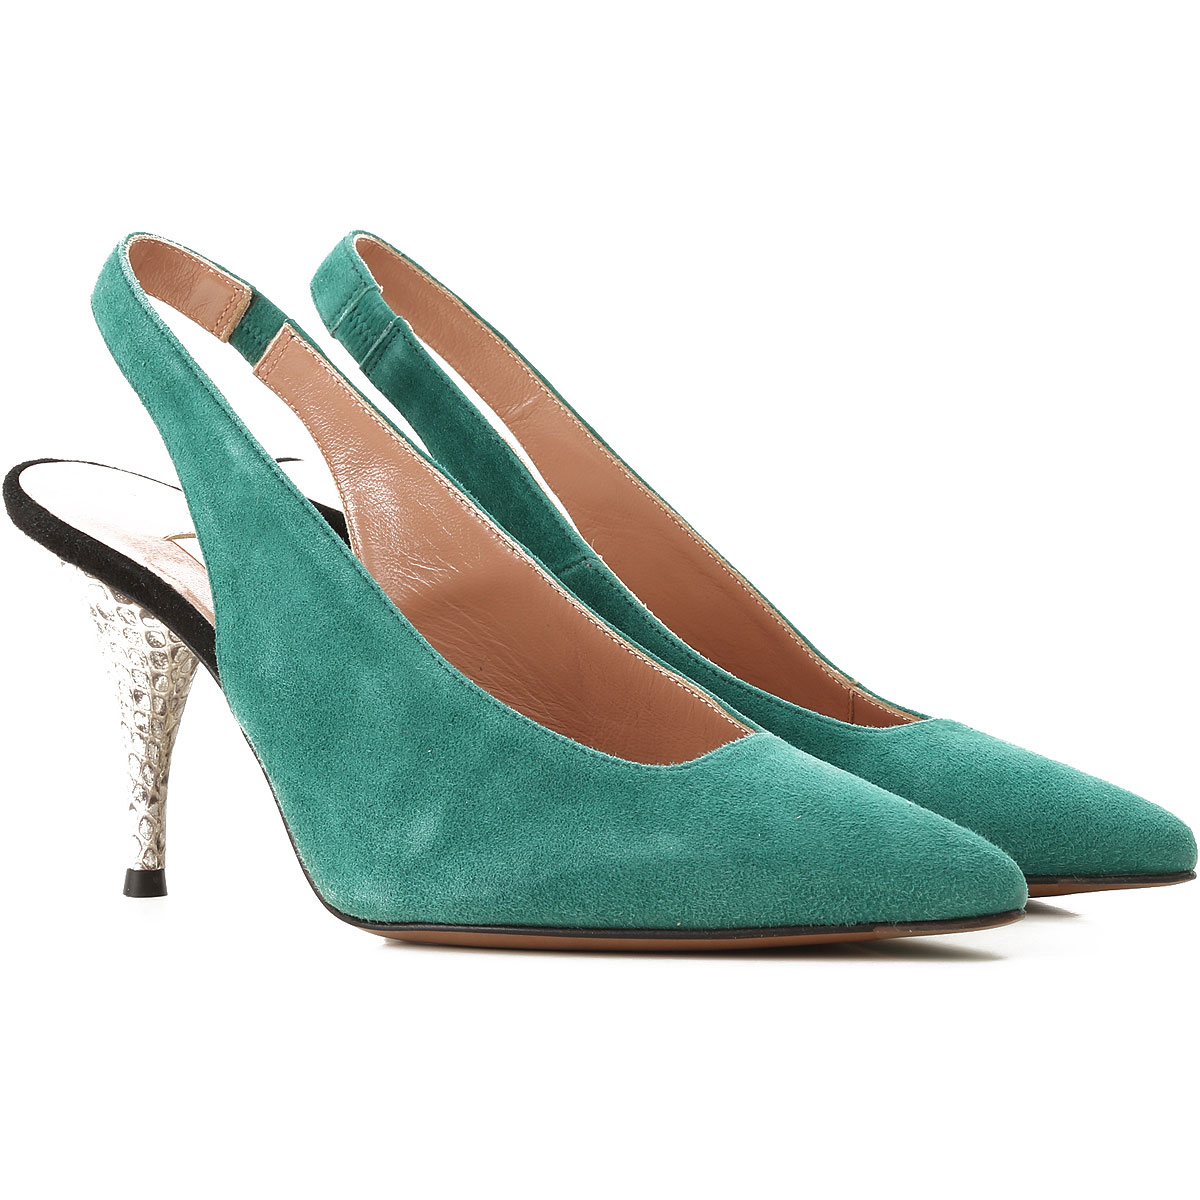 Lautre Chose Pumps & High Heels for Women On Sale in Outlet, Green, Calfskin Leather, 2019, 6 8 9